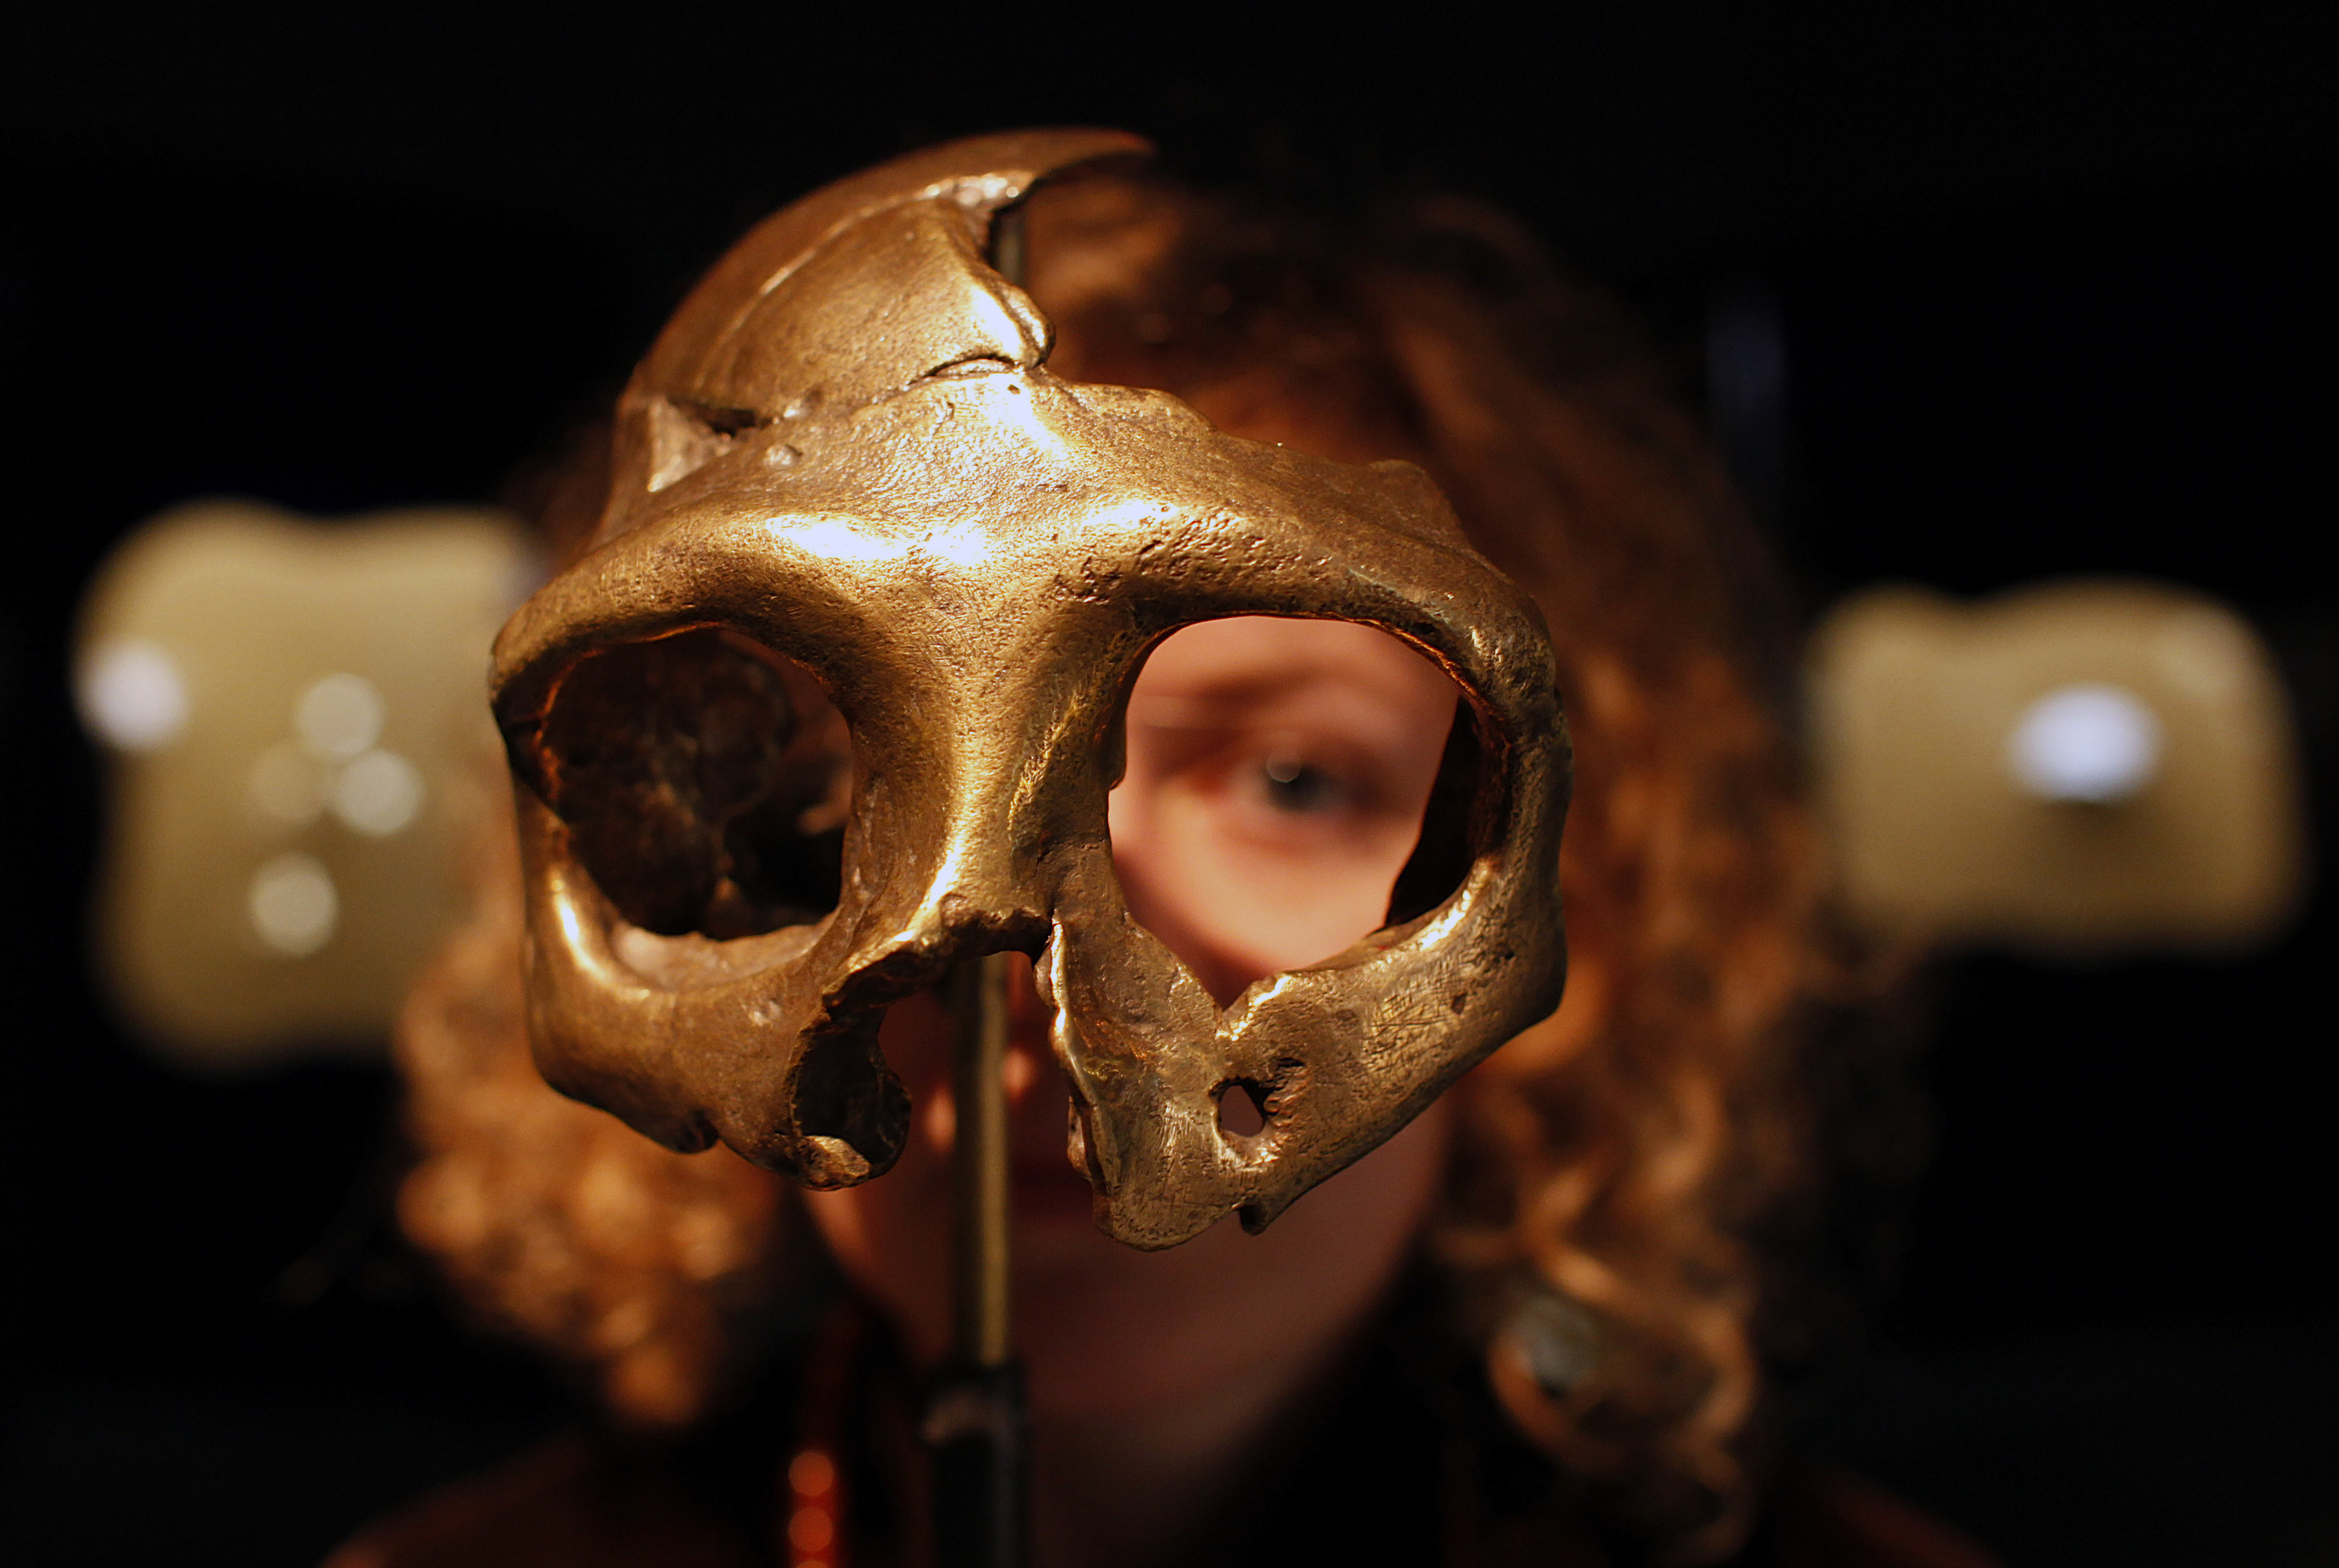 A girl looks through the replica of a neanderthal skull displayed in the new Neanderthal Museum in the northern town of Krapina February 25, 2010. The high-tech, multimedia museum, with exhibitions depicting the evolution from 'Big Bang' to present day, opens on February 27. REUTERS/Nikola Solic (CROATIA - Tags: SOCIETY IMAGES OF THE DAY) - GM1E62Q00JZ01